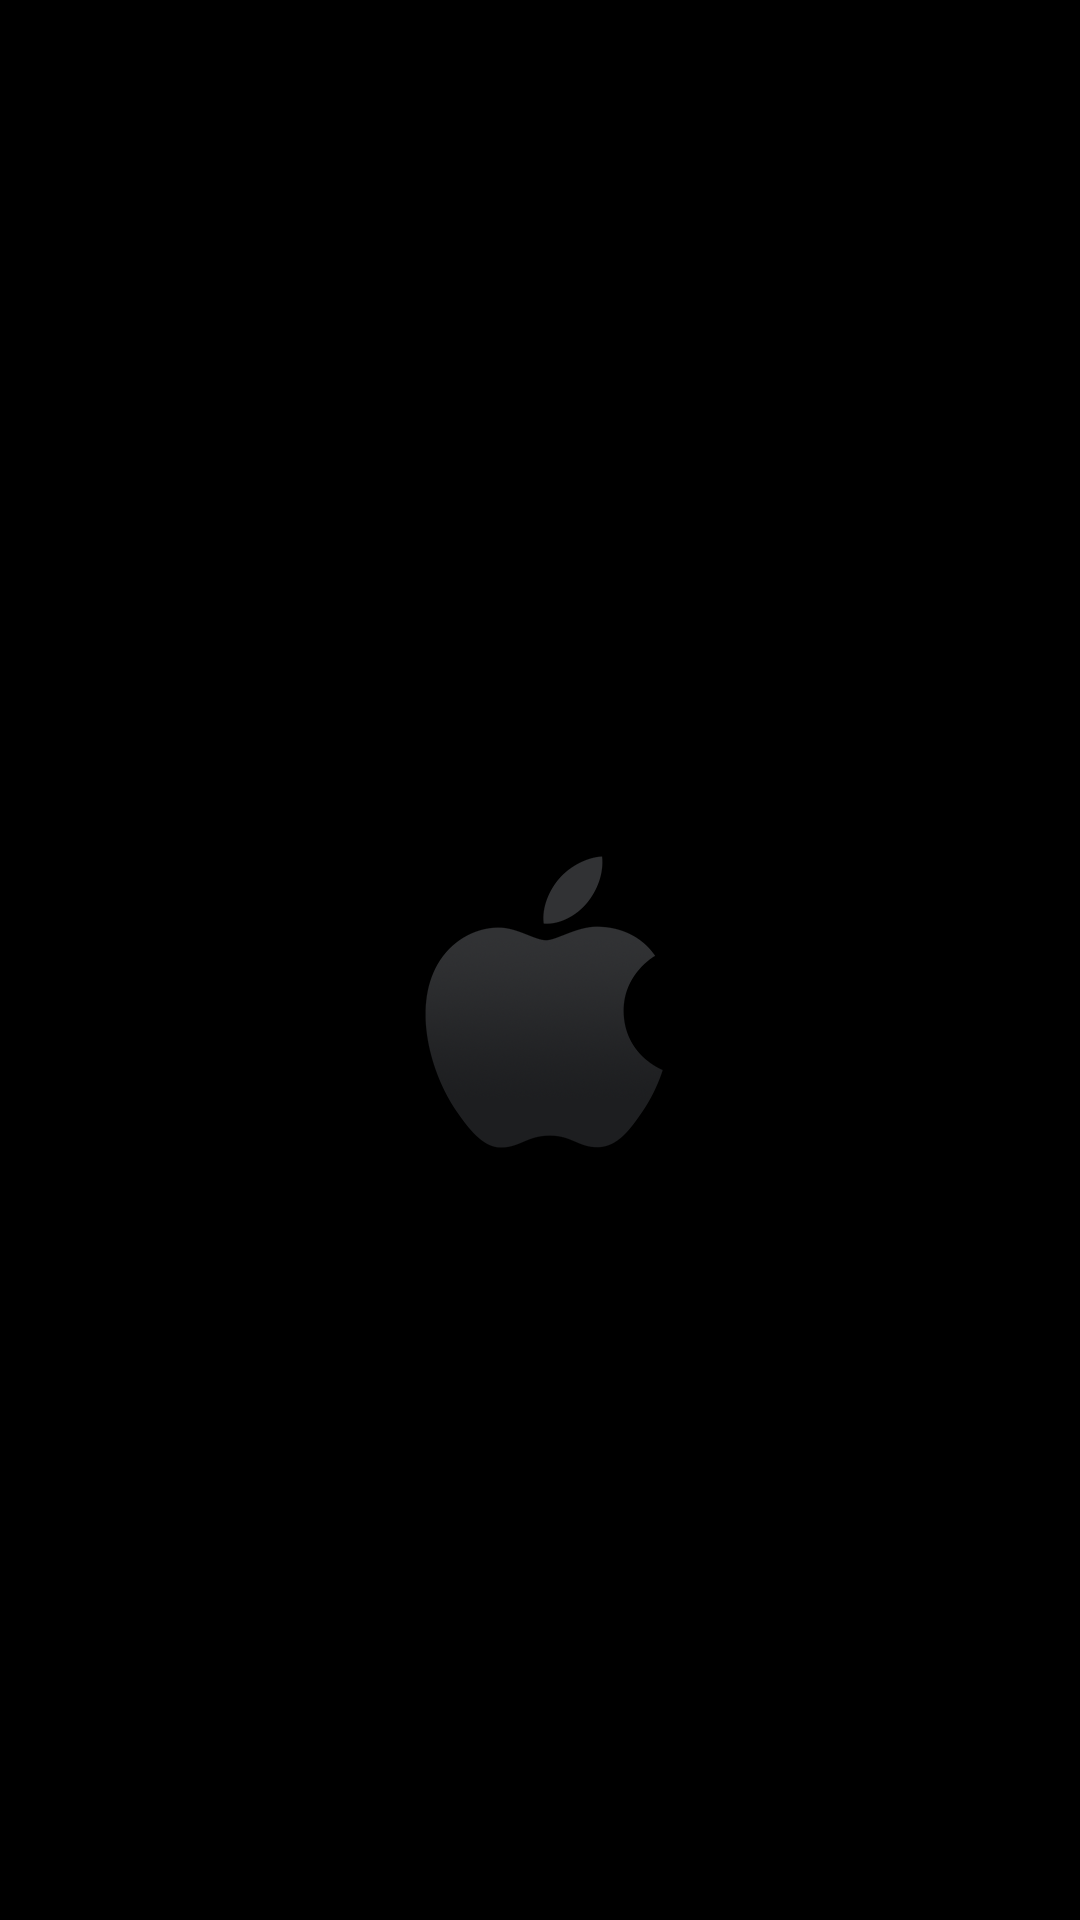 Pin By Amir On Apple Logo Wallpapers Apple Logo Wallpaper Iphone Black Wallpaper Iphone Apple Wallpaper